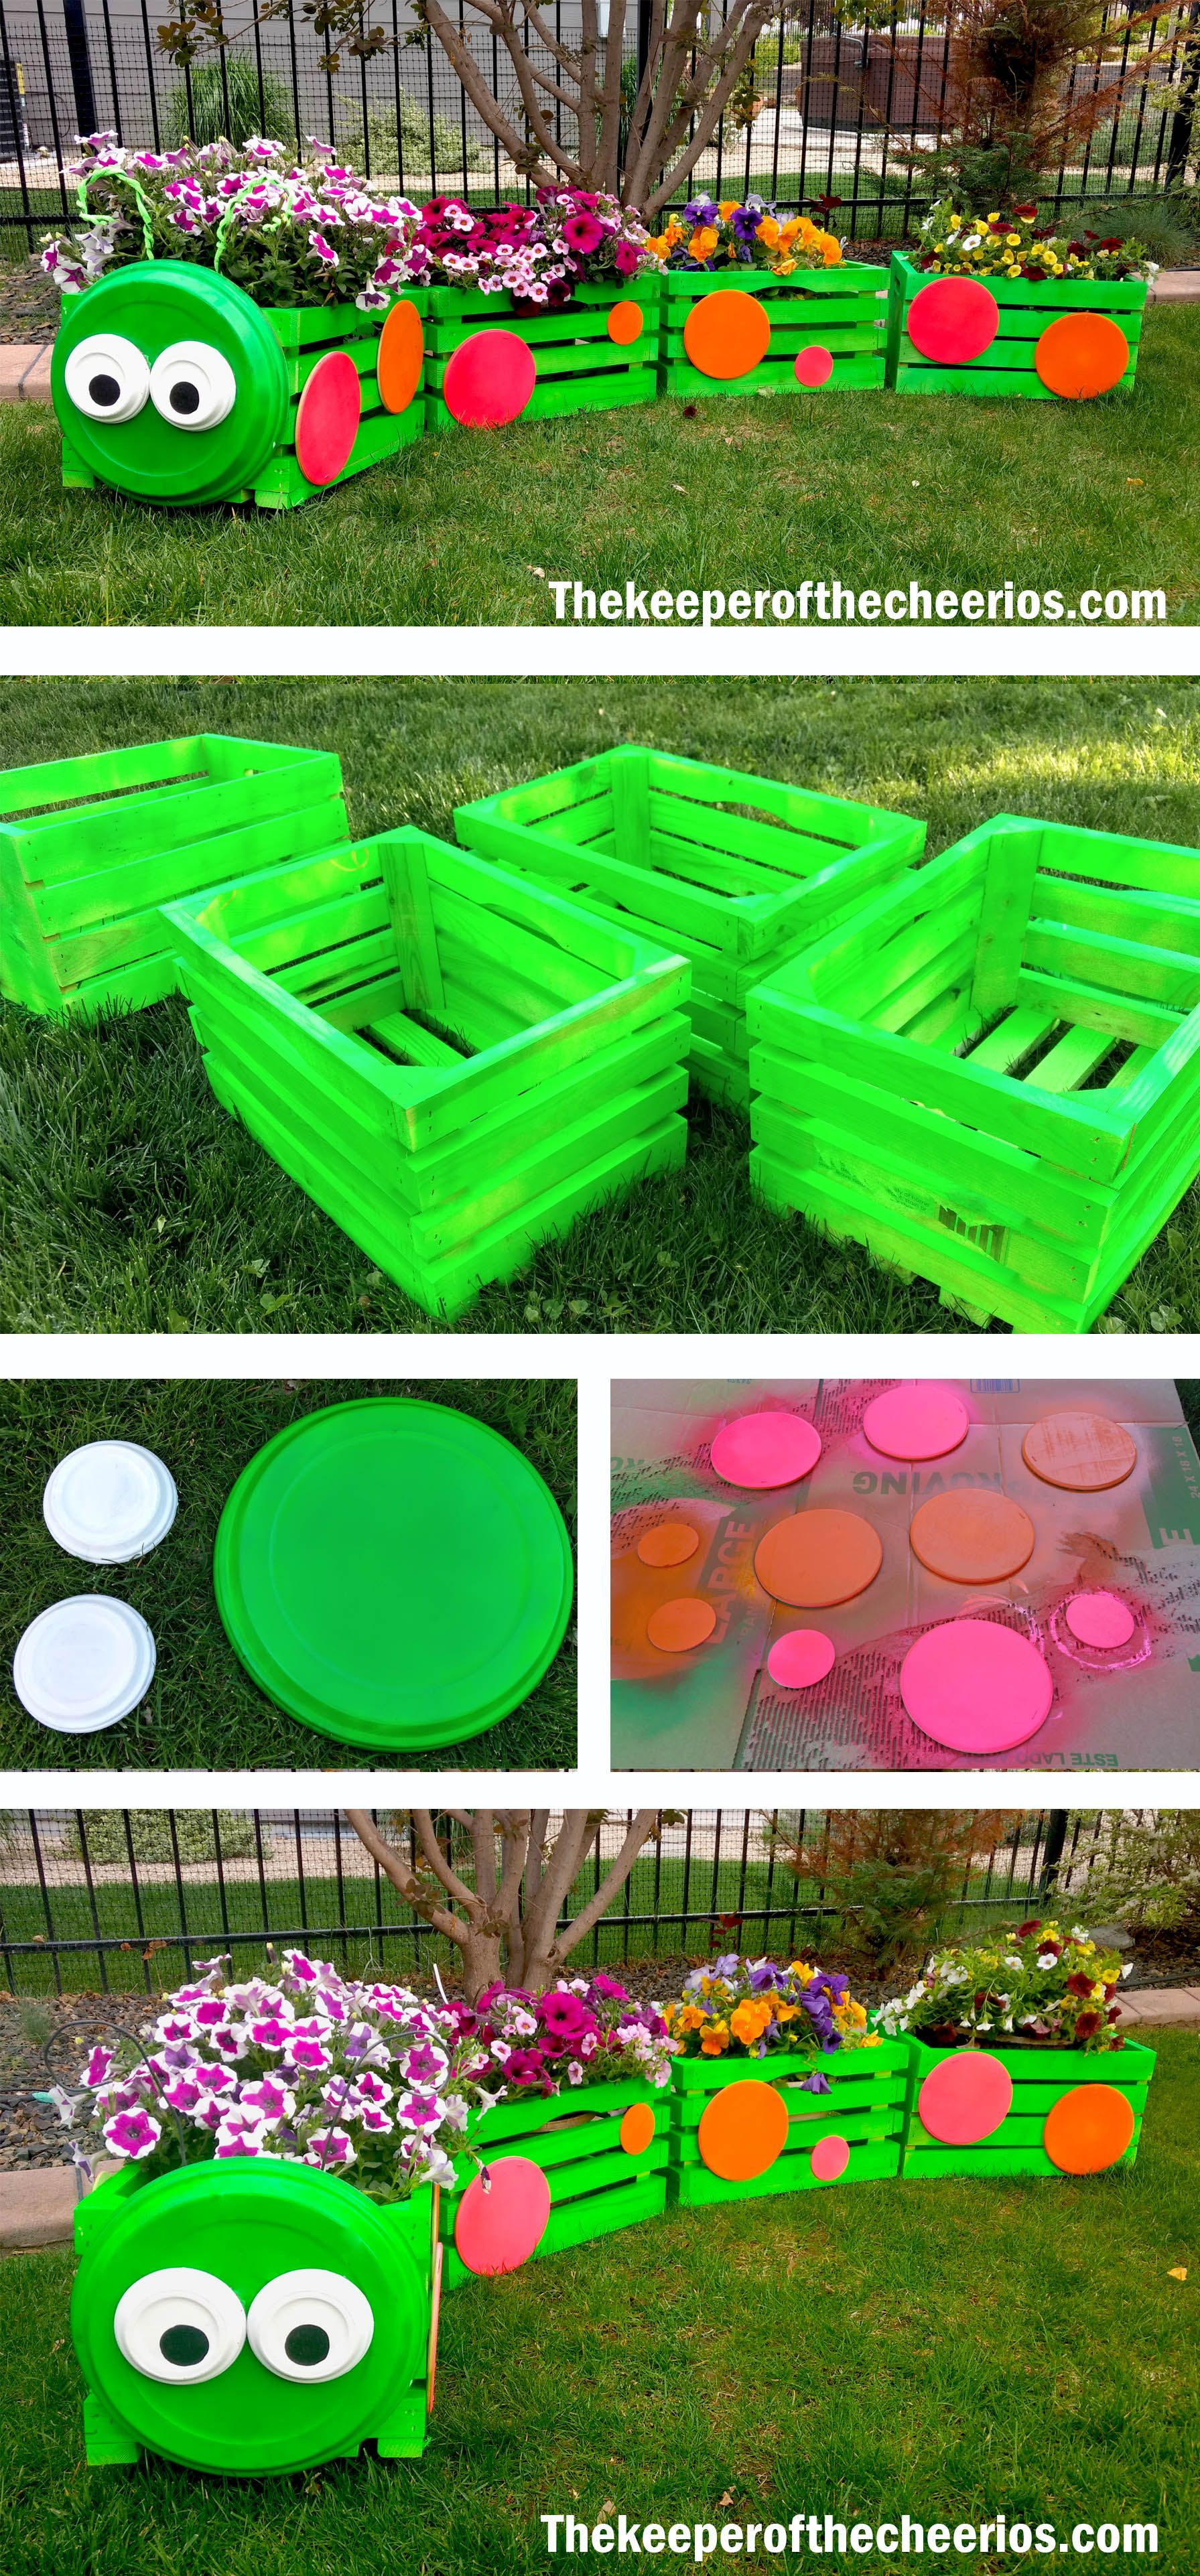 Caterpillar Crate Planter Gardening For Kids Garden Crafts Sensory Garden